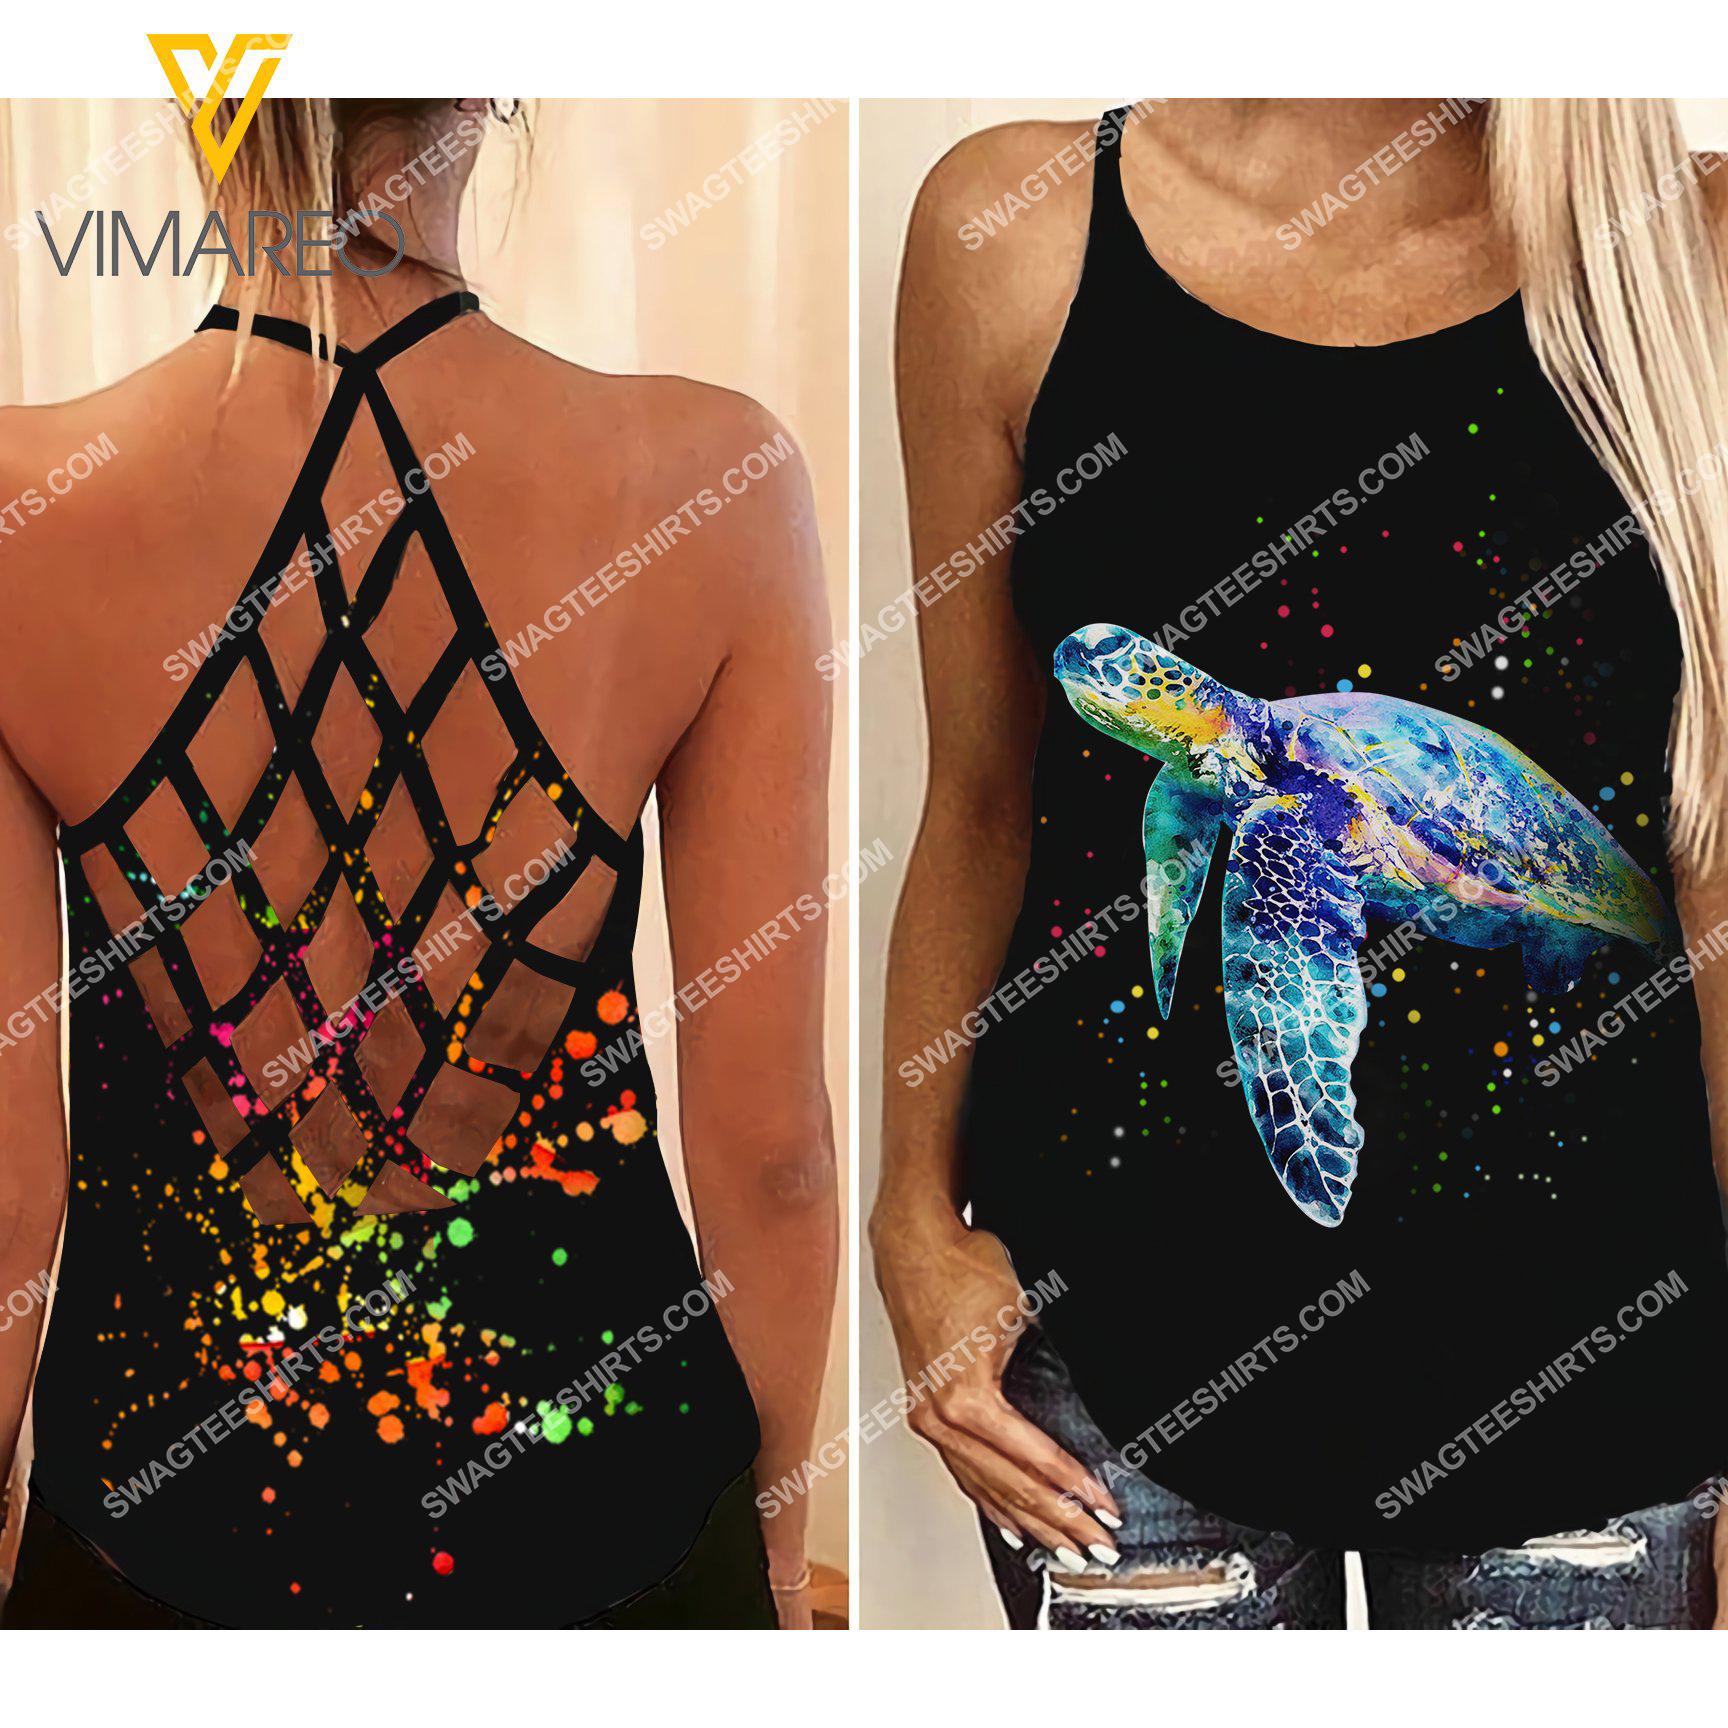 sea turtle colorful all over printed strappy back tank top 2 - Copy (3)